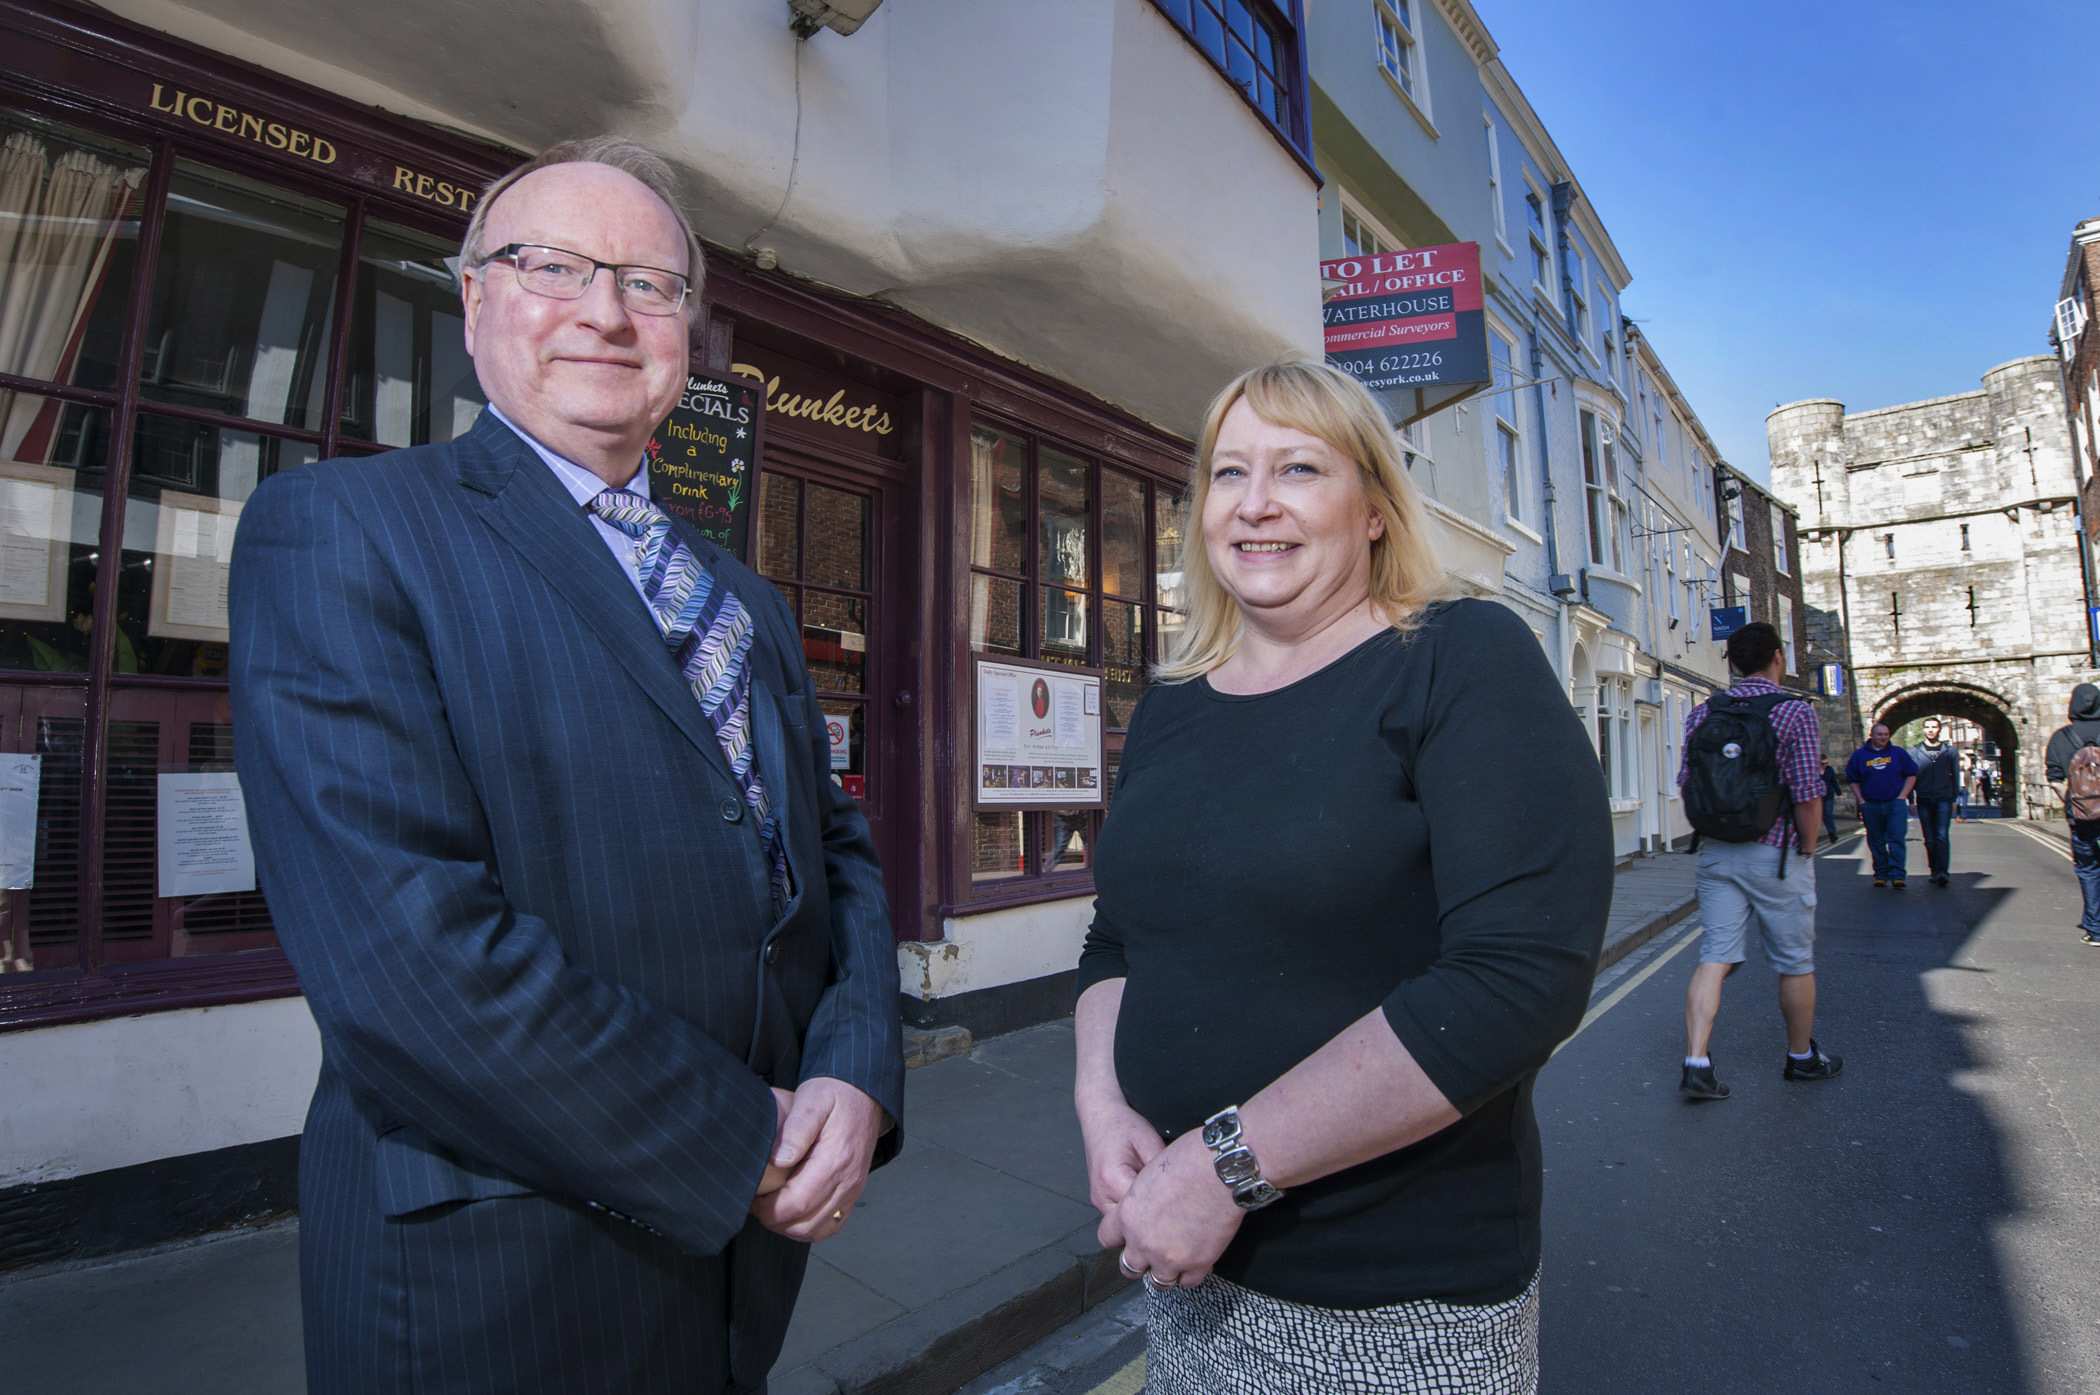 JWP Creers corporate finance partner, Tony Farmer and Plunkets director, Sharon Brown, outside the well known independent York restaurant which is being put up for sale.